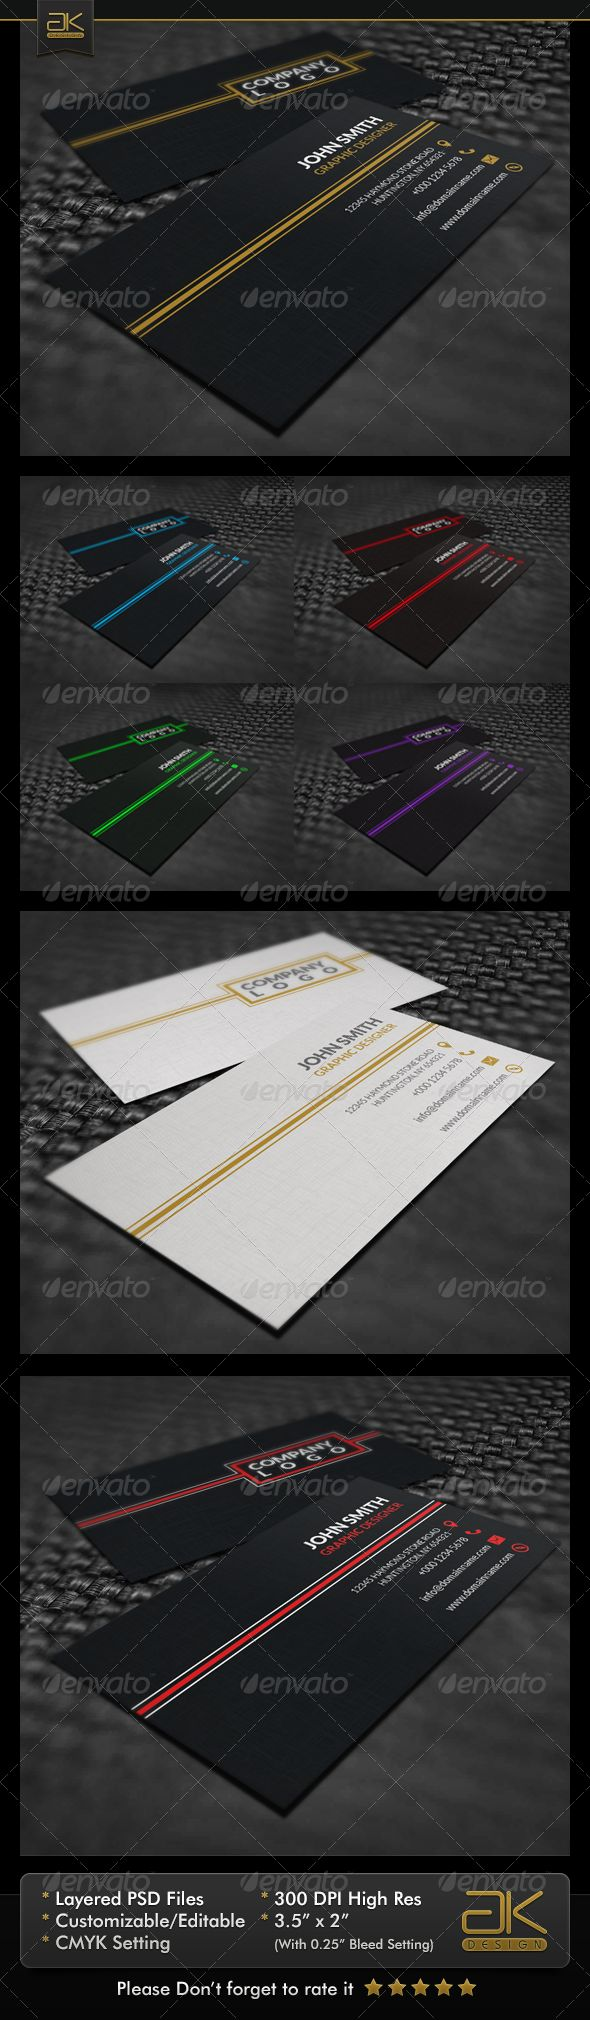 88 best print templates images on pinterest business cards name simple business card reheart Images